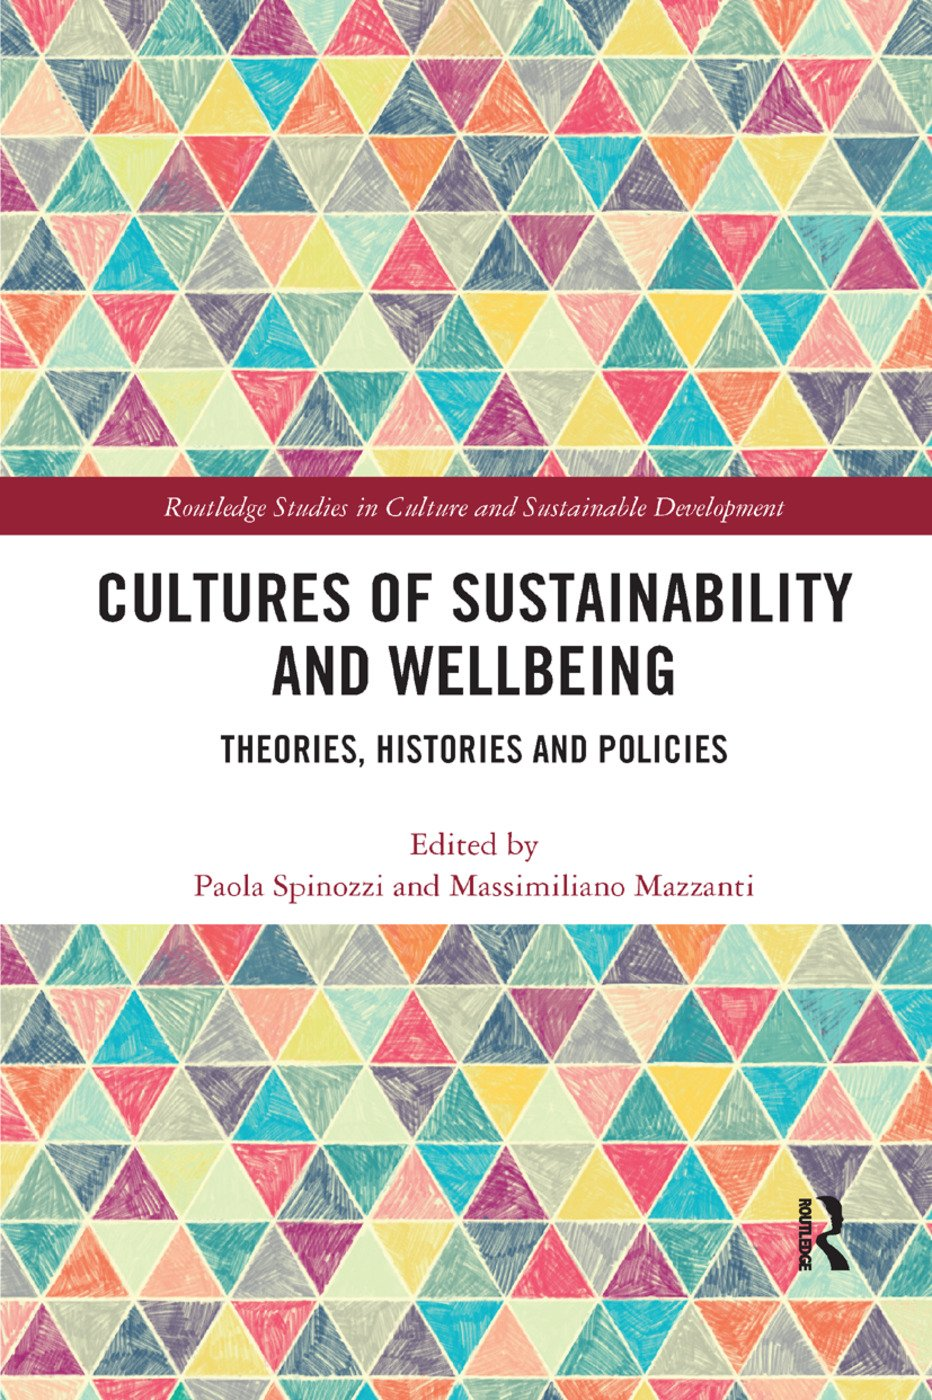 Cultures of Sustainability and Wellbeing: Theories, Histories and Policies book cover